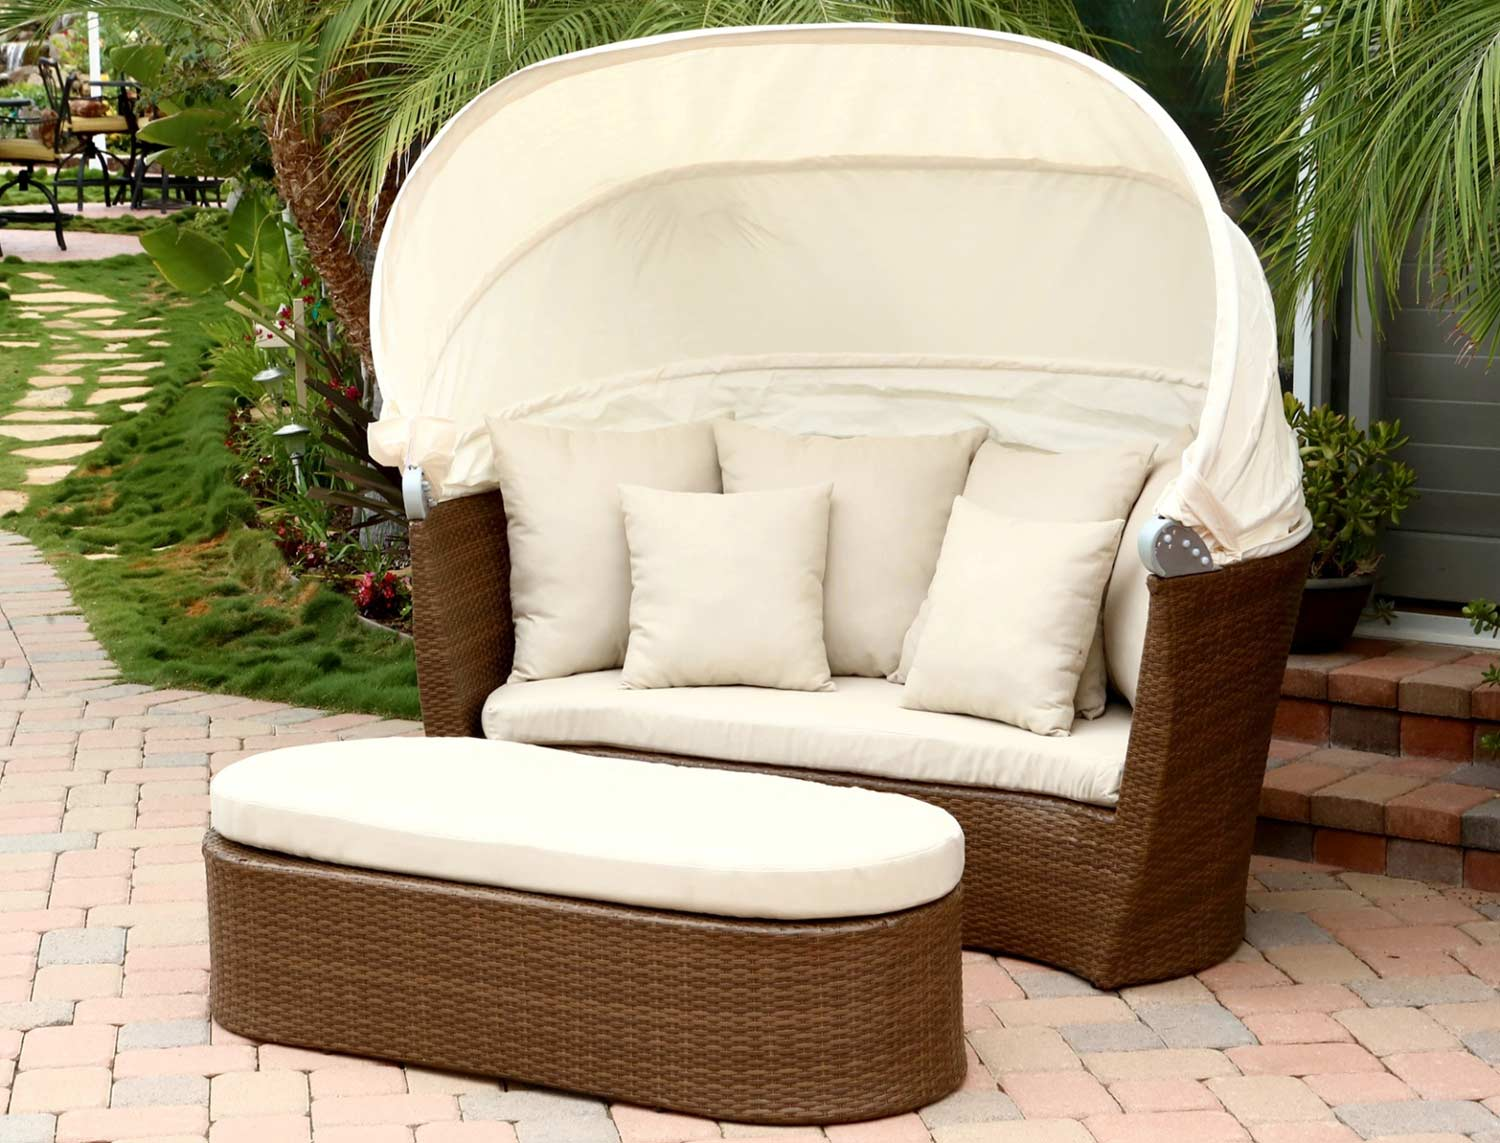 Abbyson Living: Palermo Outdoor Furniture Collection